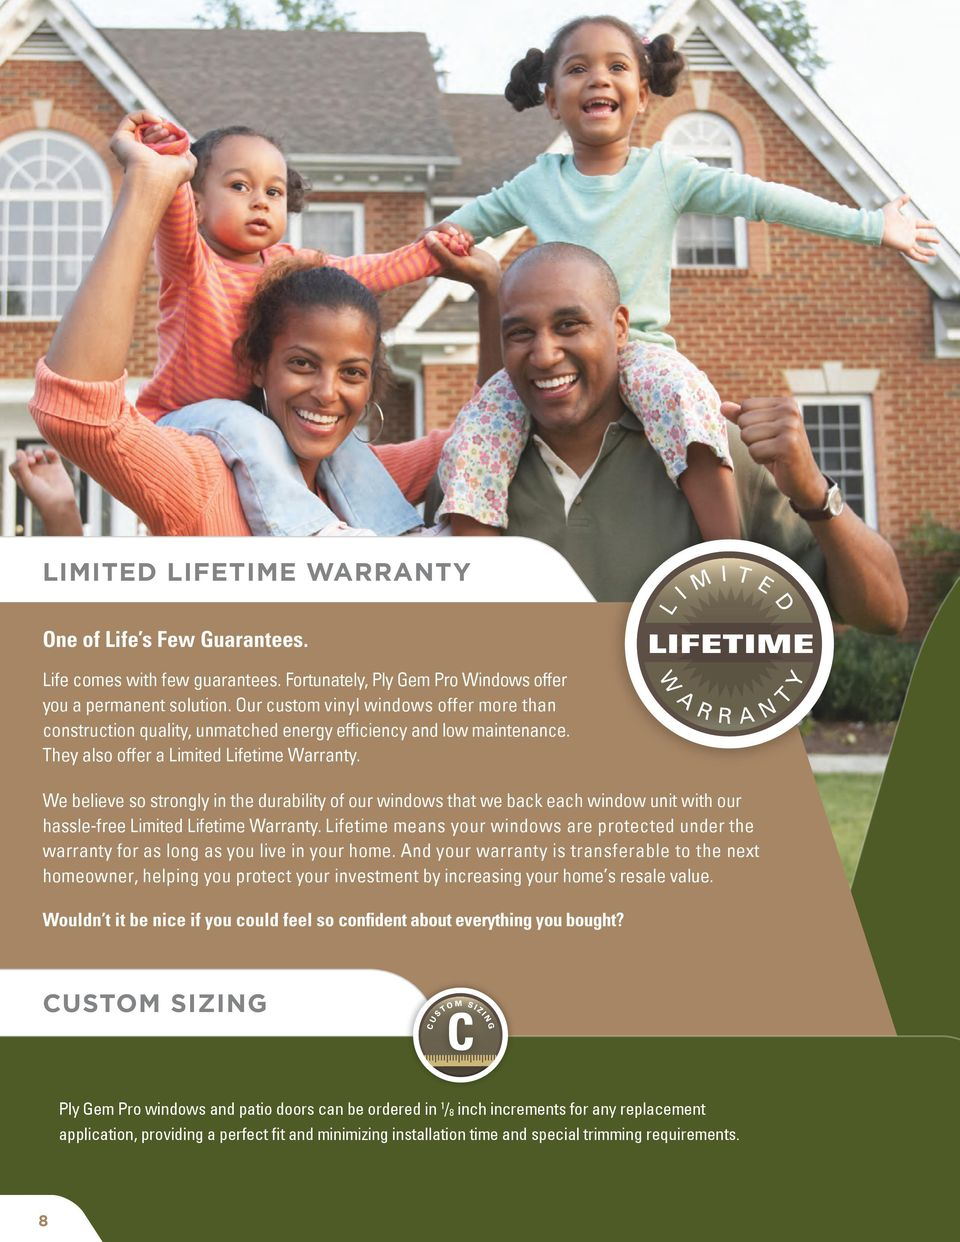 We believe so strongly in the durability of our windows that we back each window unit with our hassle-free Limited Lifetime Warranty.